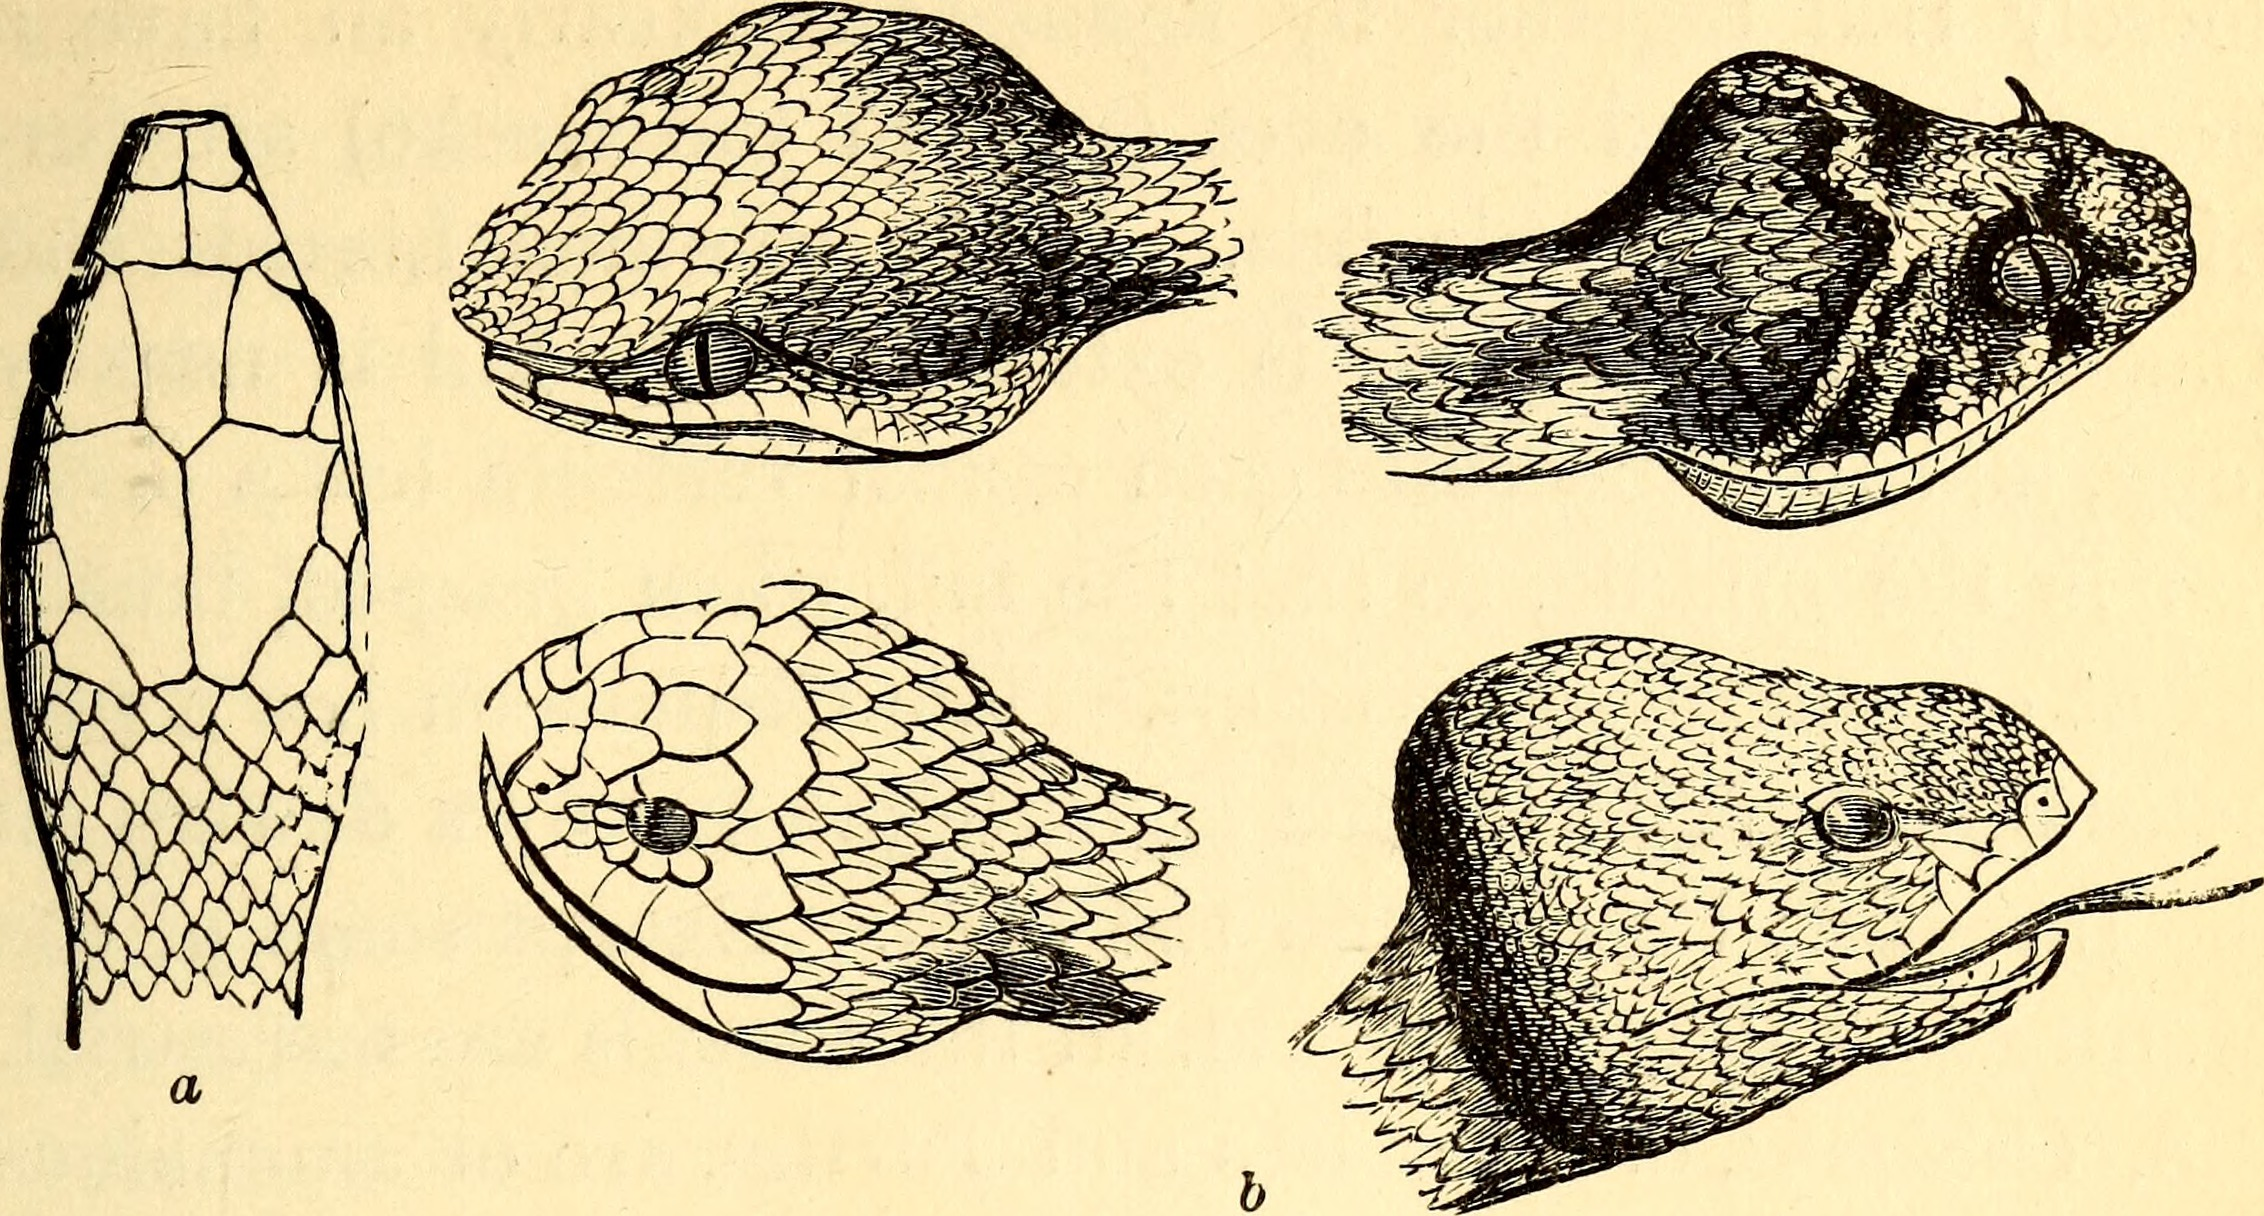 Snake head structures. Comparative Zoology, Structural and Systematic. Orton, Birge (1883). Photo courtesy of Wikimedia Commons.